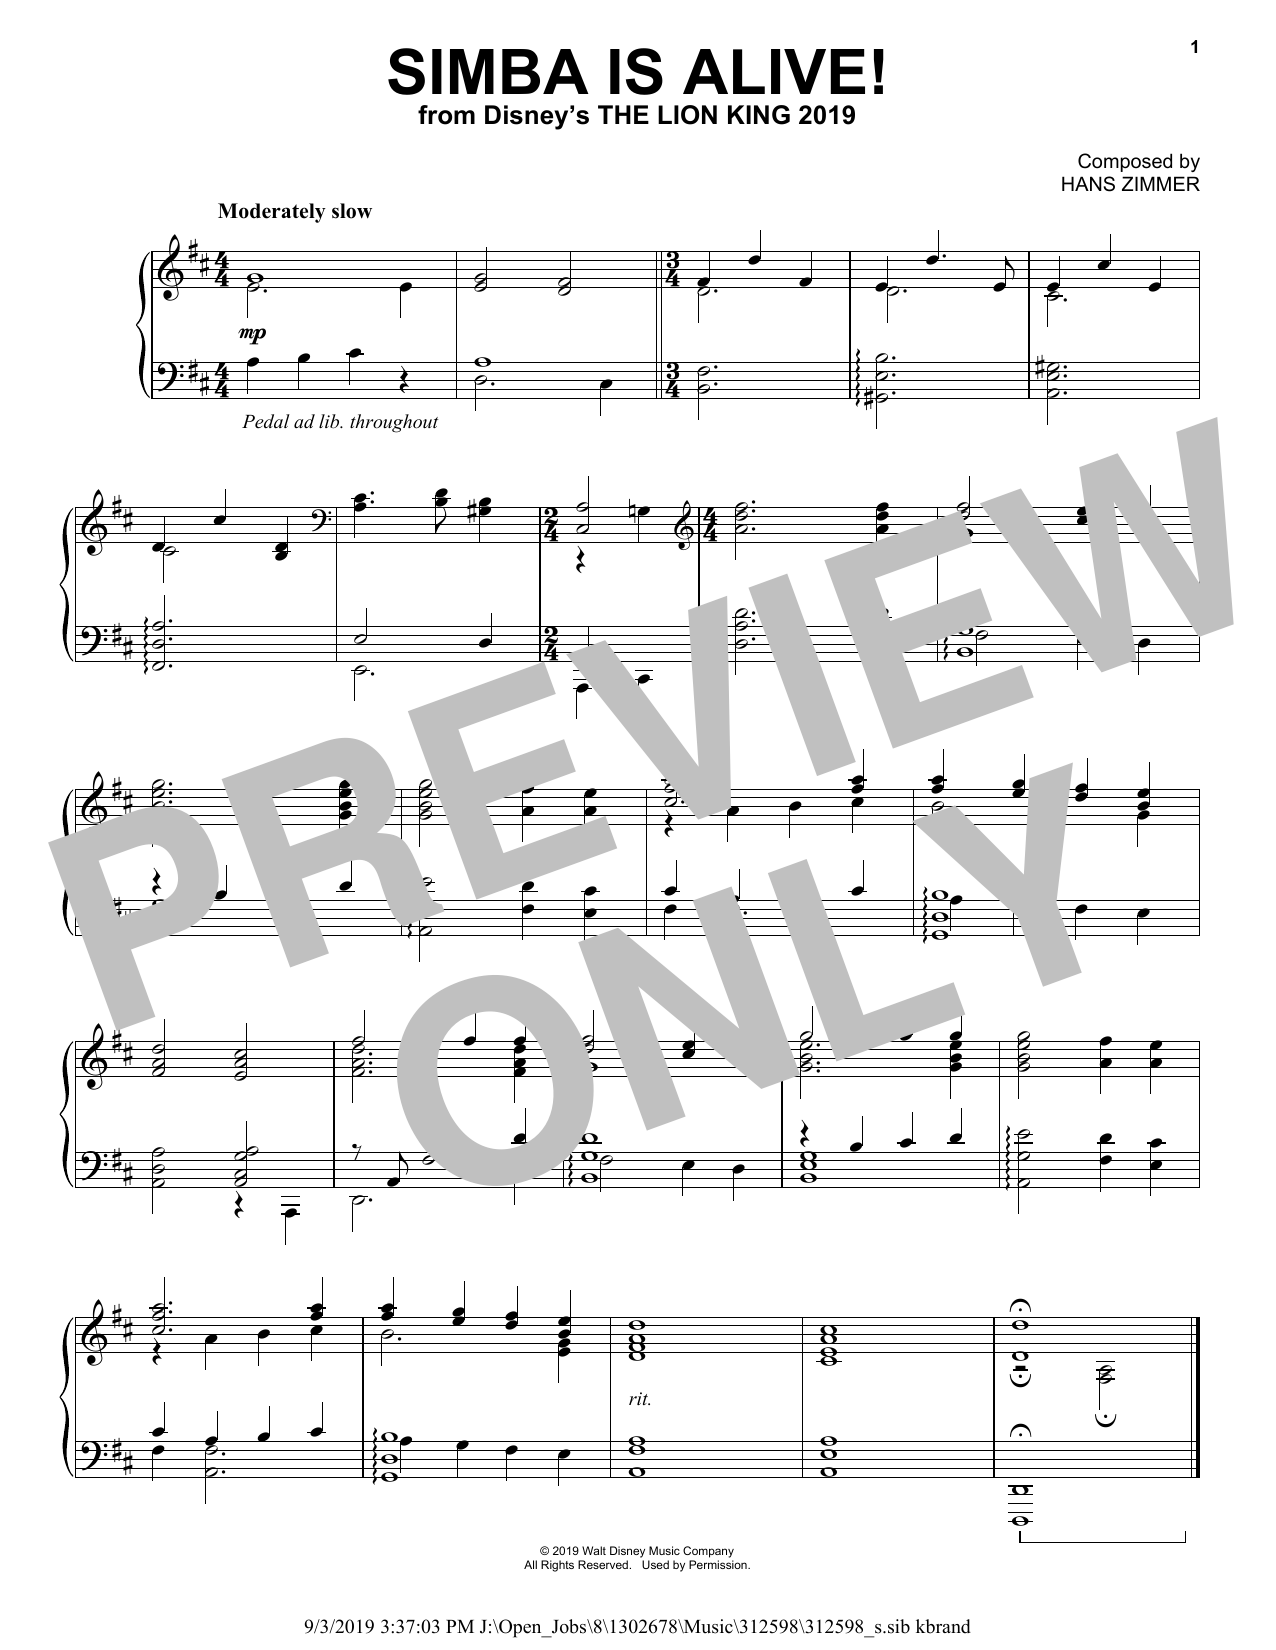 Hans Zimmer Simba Is Alive! (from The Lion King 2019) sheet music notes and chords. Download Printable PDF.